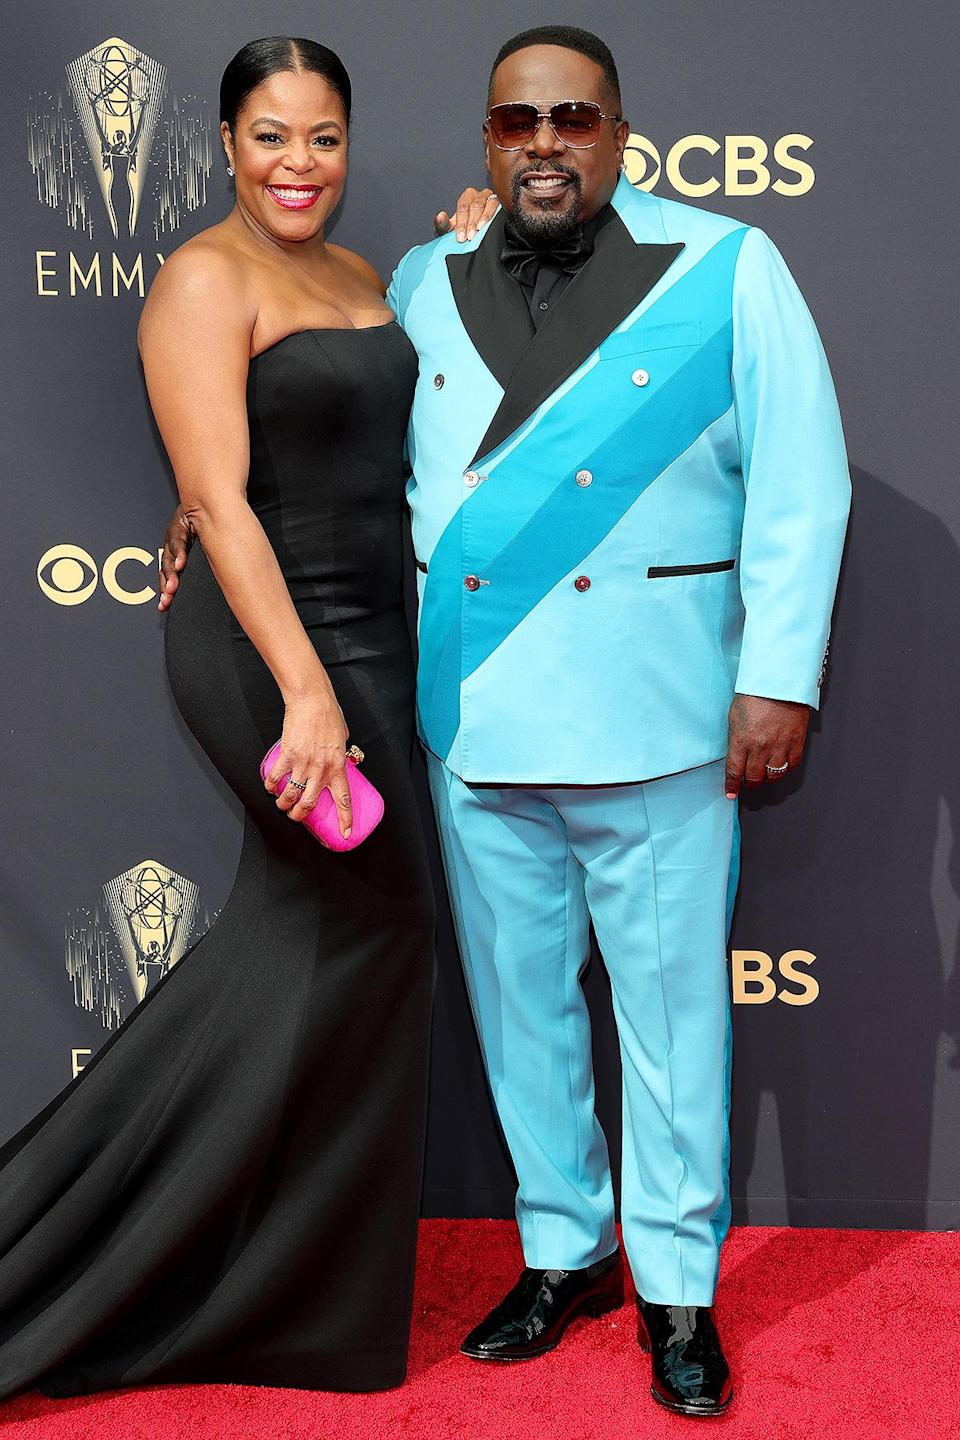 <p>The night's host and his wife brought some fun pops of color to the red carpet. </p>